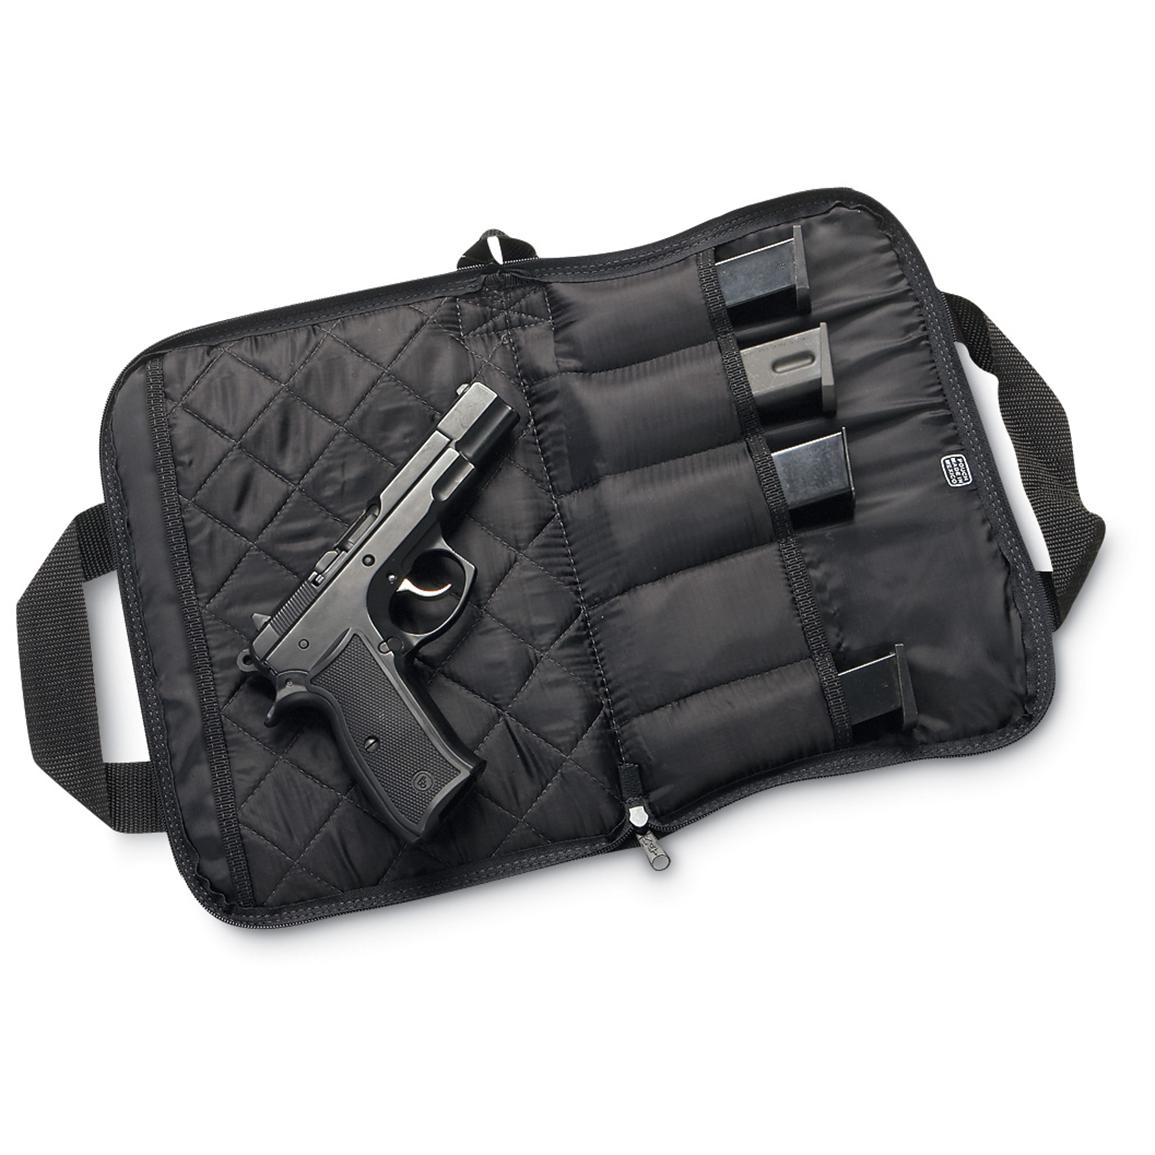 Python Pistol Rug With 5 Mag Pouches, Black